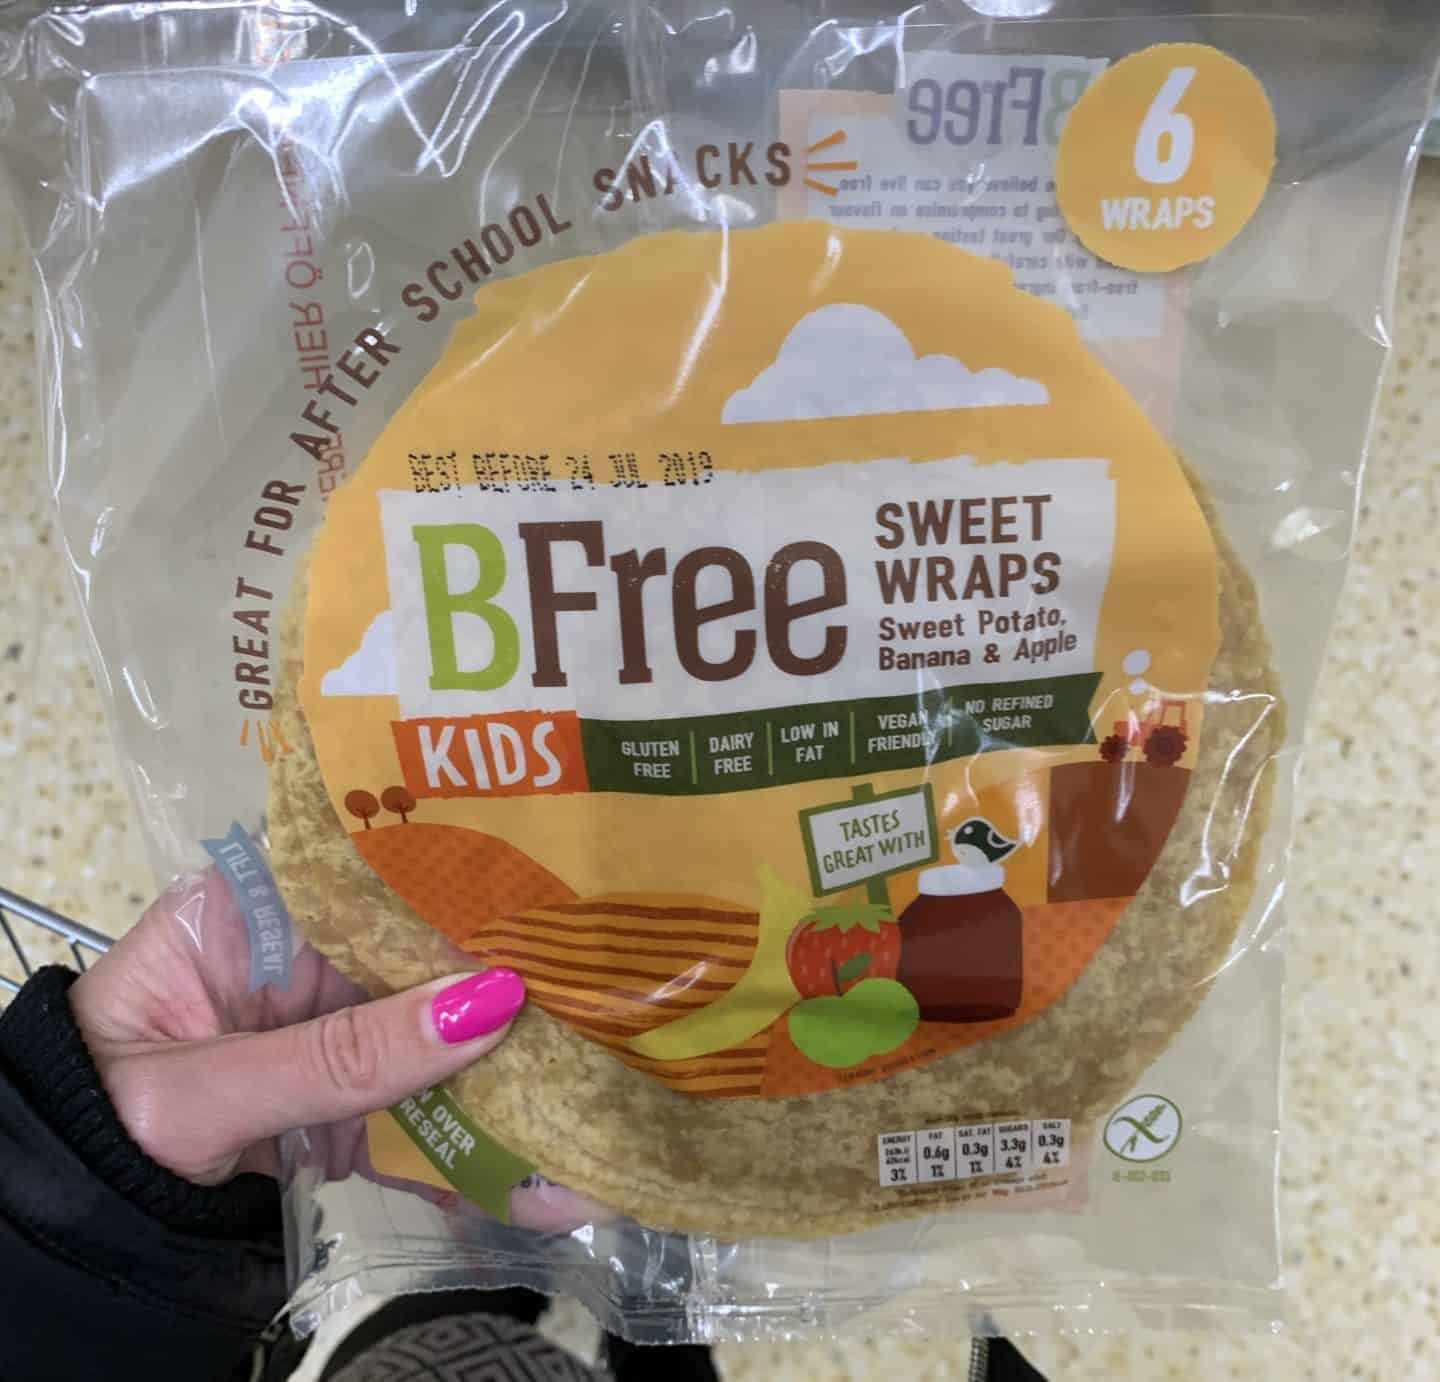 gluten free foods may 2019 5